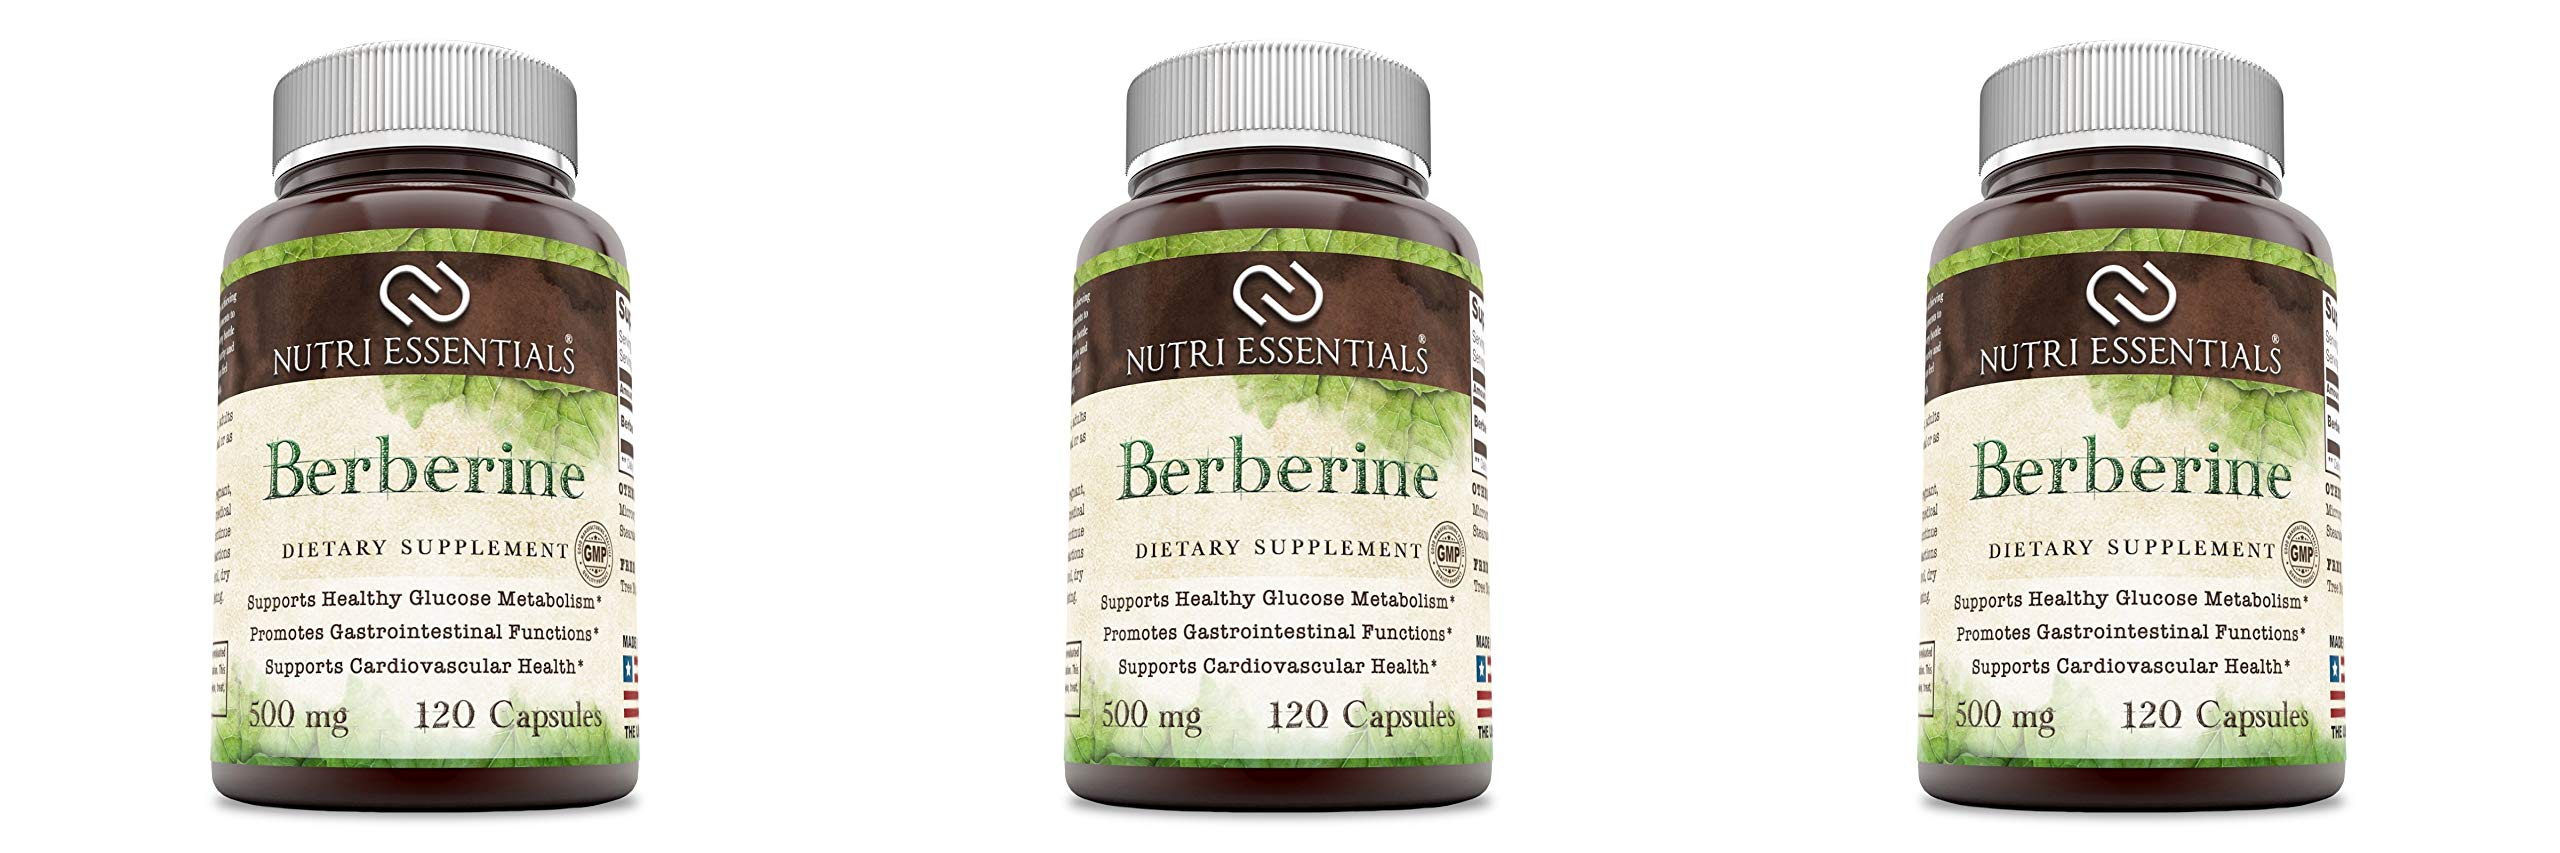 Nutri Essentials Berberine 500mg, 120 Capsules - Metabolism Booster and Immune System Support - Promotes Weight Loss and Healthy Blood Sugar Levels (3 Pack) by Nutri Essentials